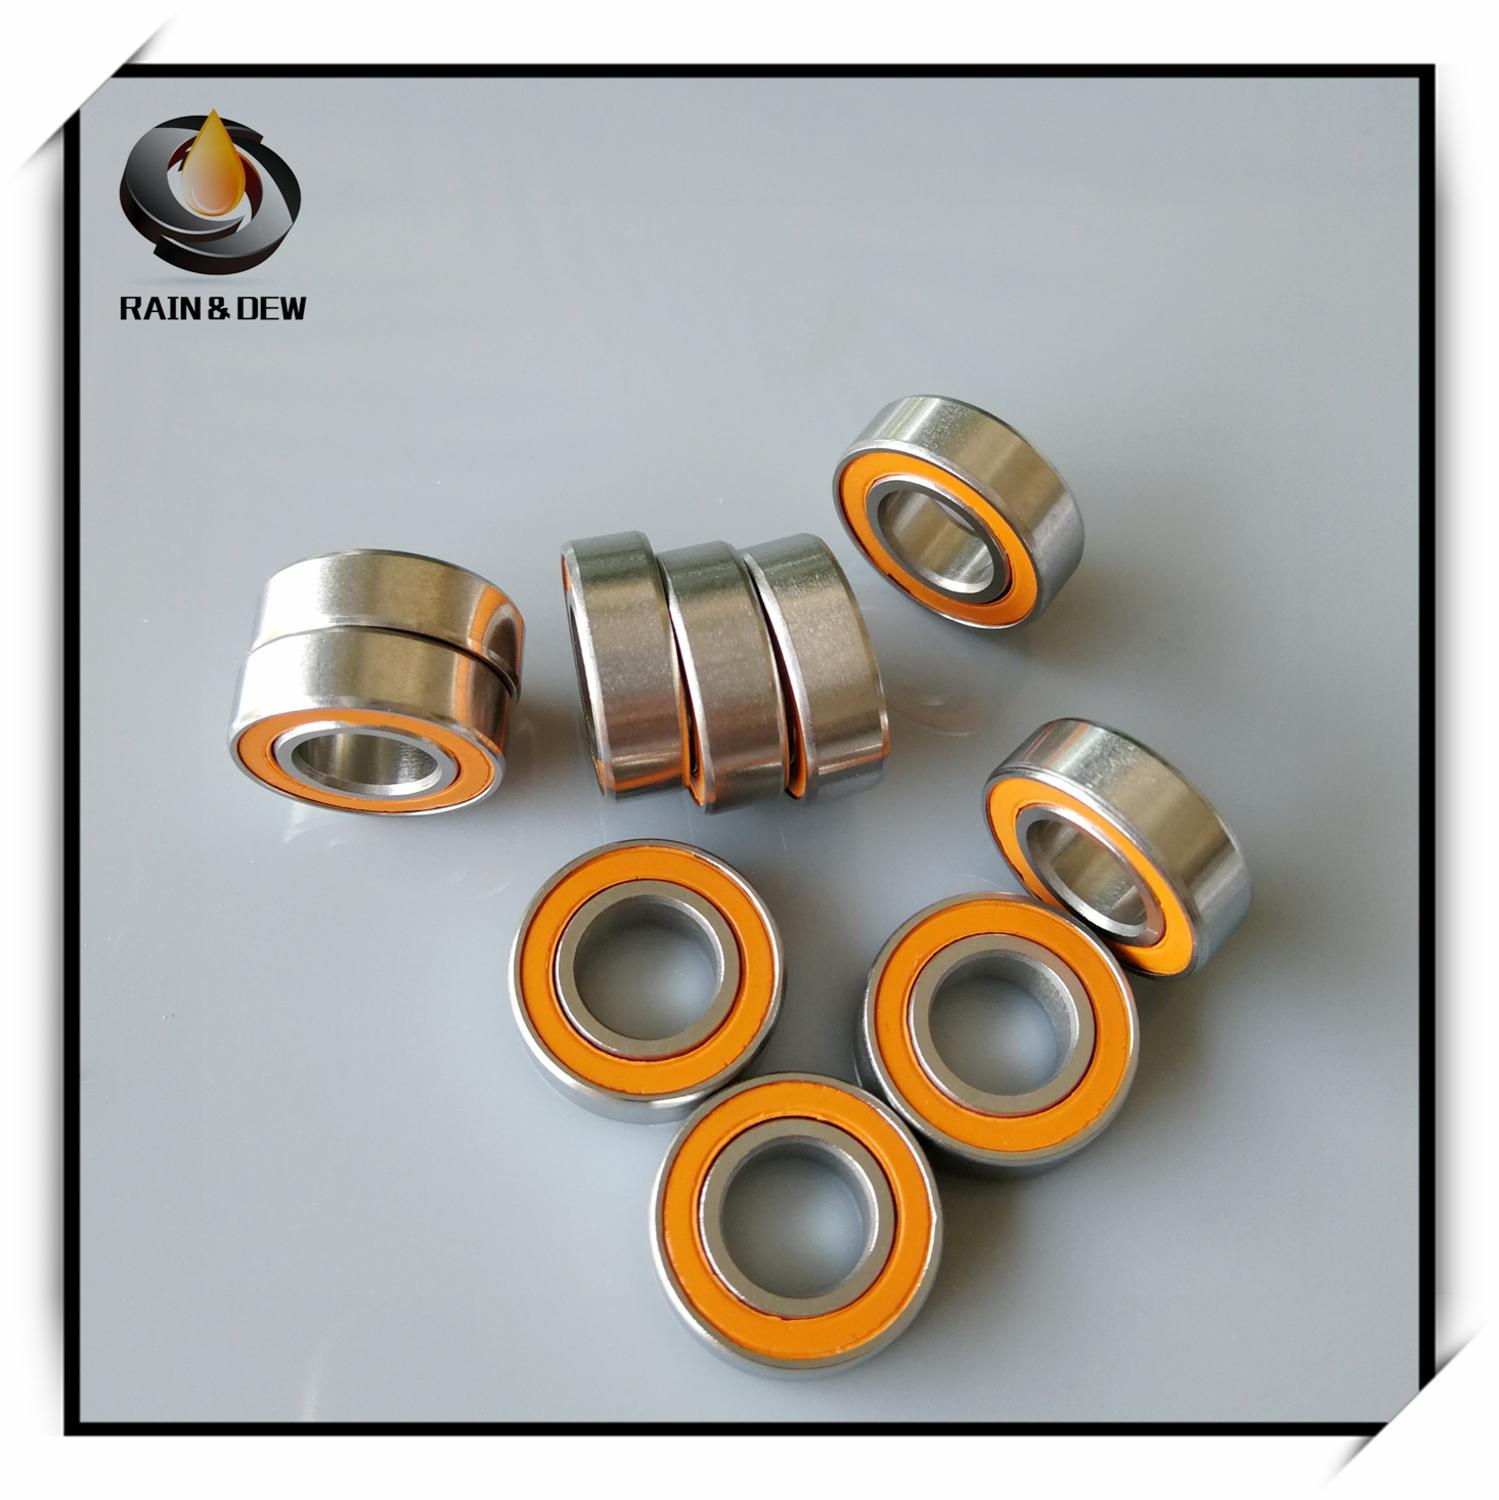 1Pcs  S688 2RS CB ABEC7 8x16x5 Mm Stainless Steel Hybrid Ceramic Ball Bearing S688-2RS S688 2RS